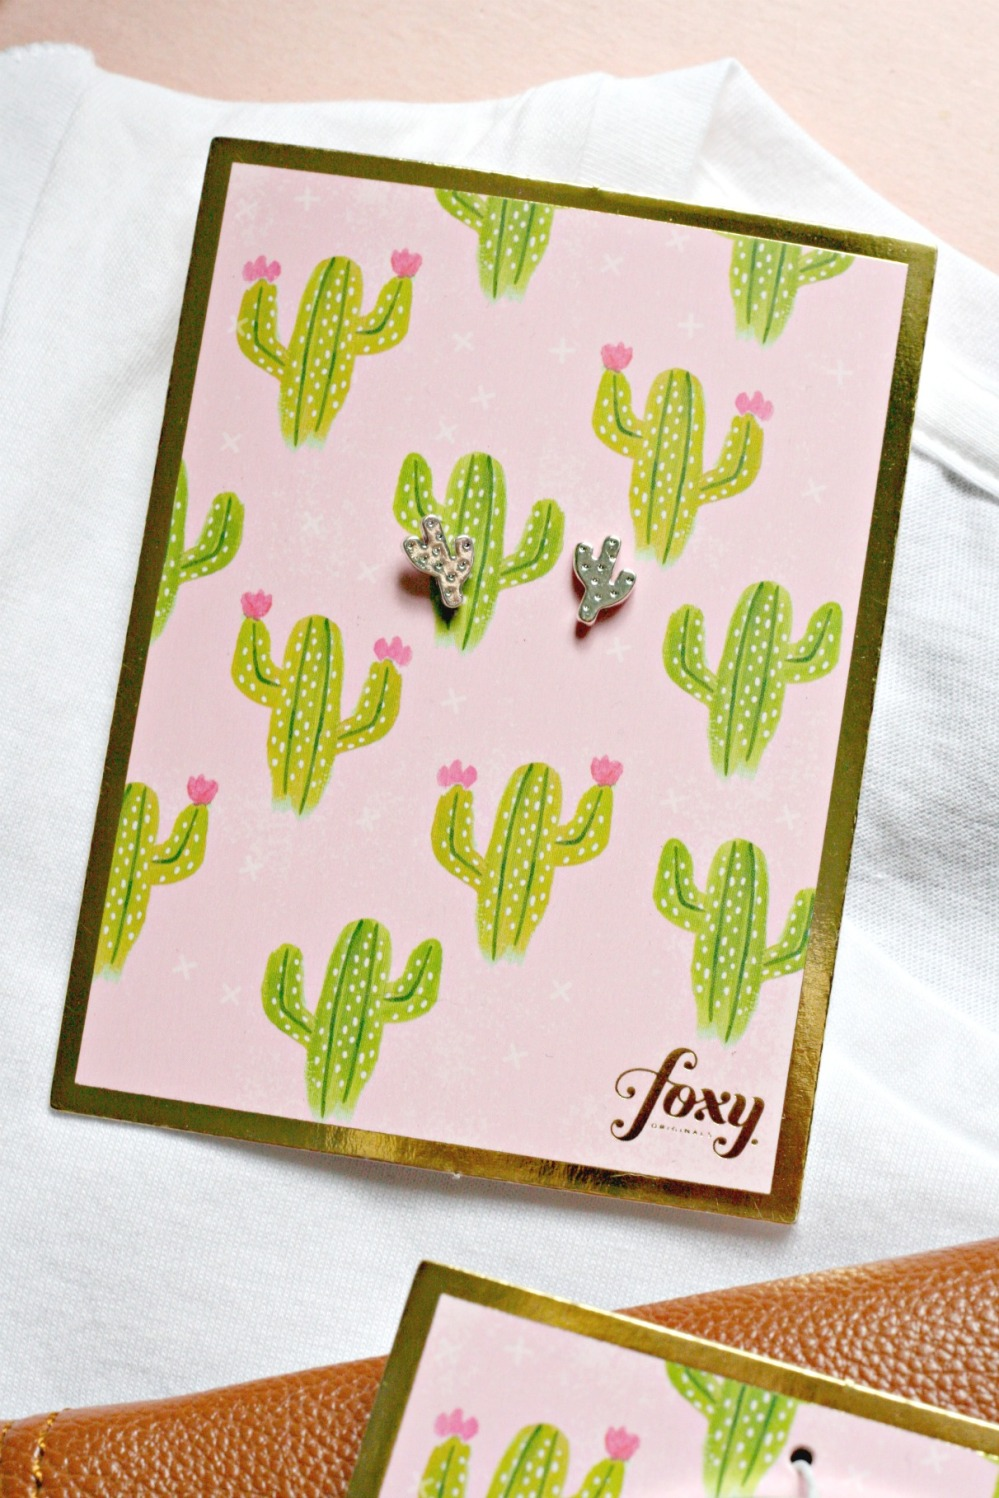 Foxy Originals cactus earrings try small things